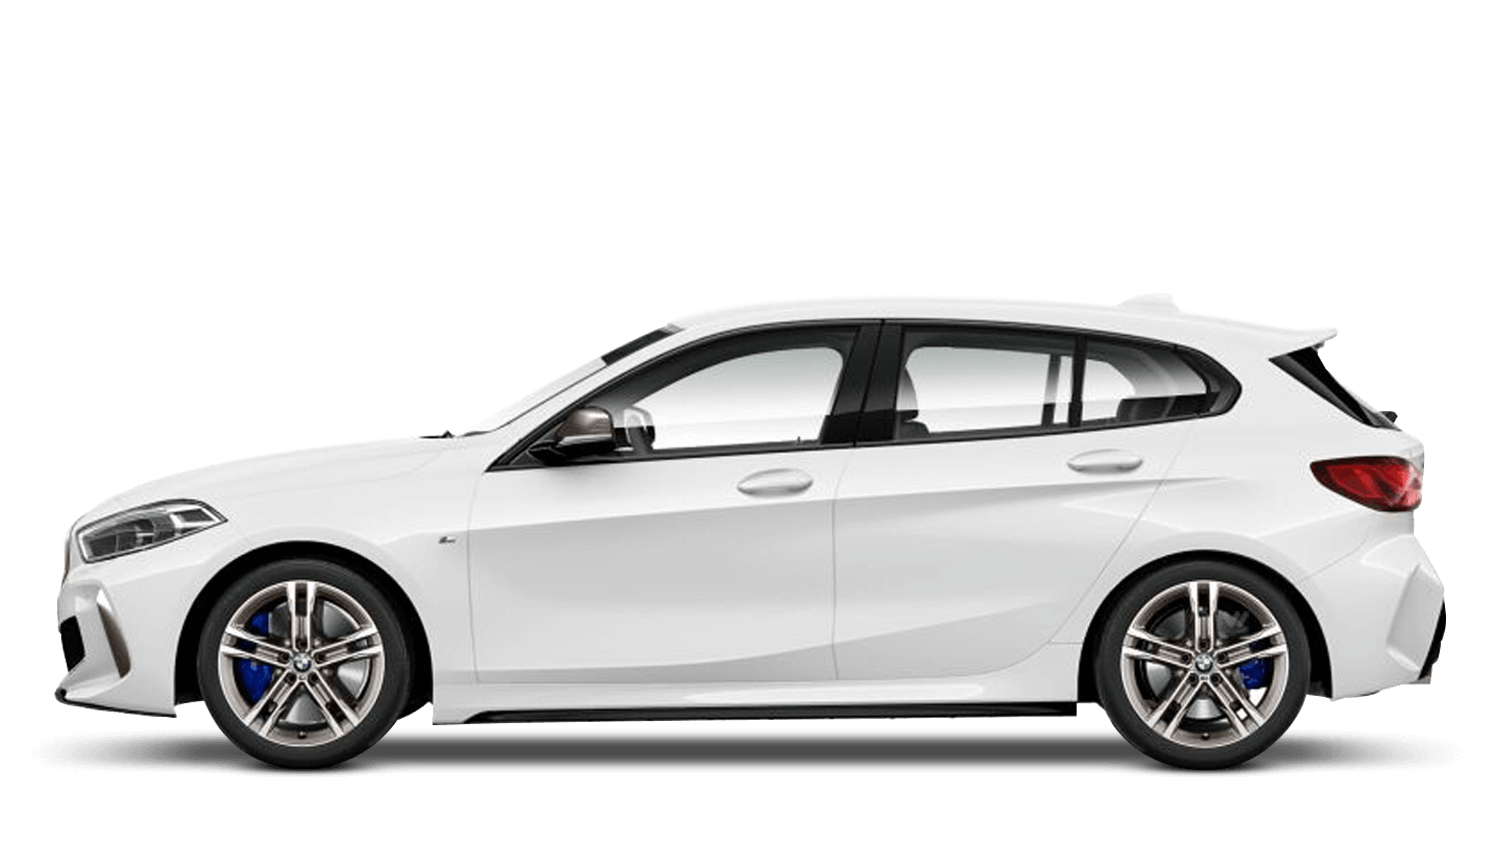 Alpine White BMW 1 Series Sports Hatch